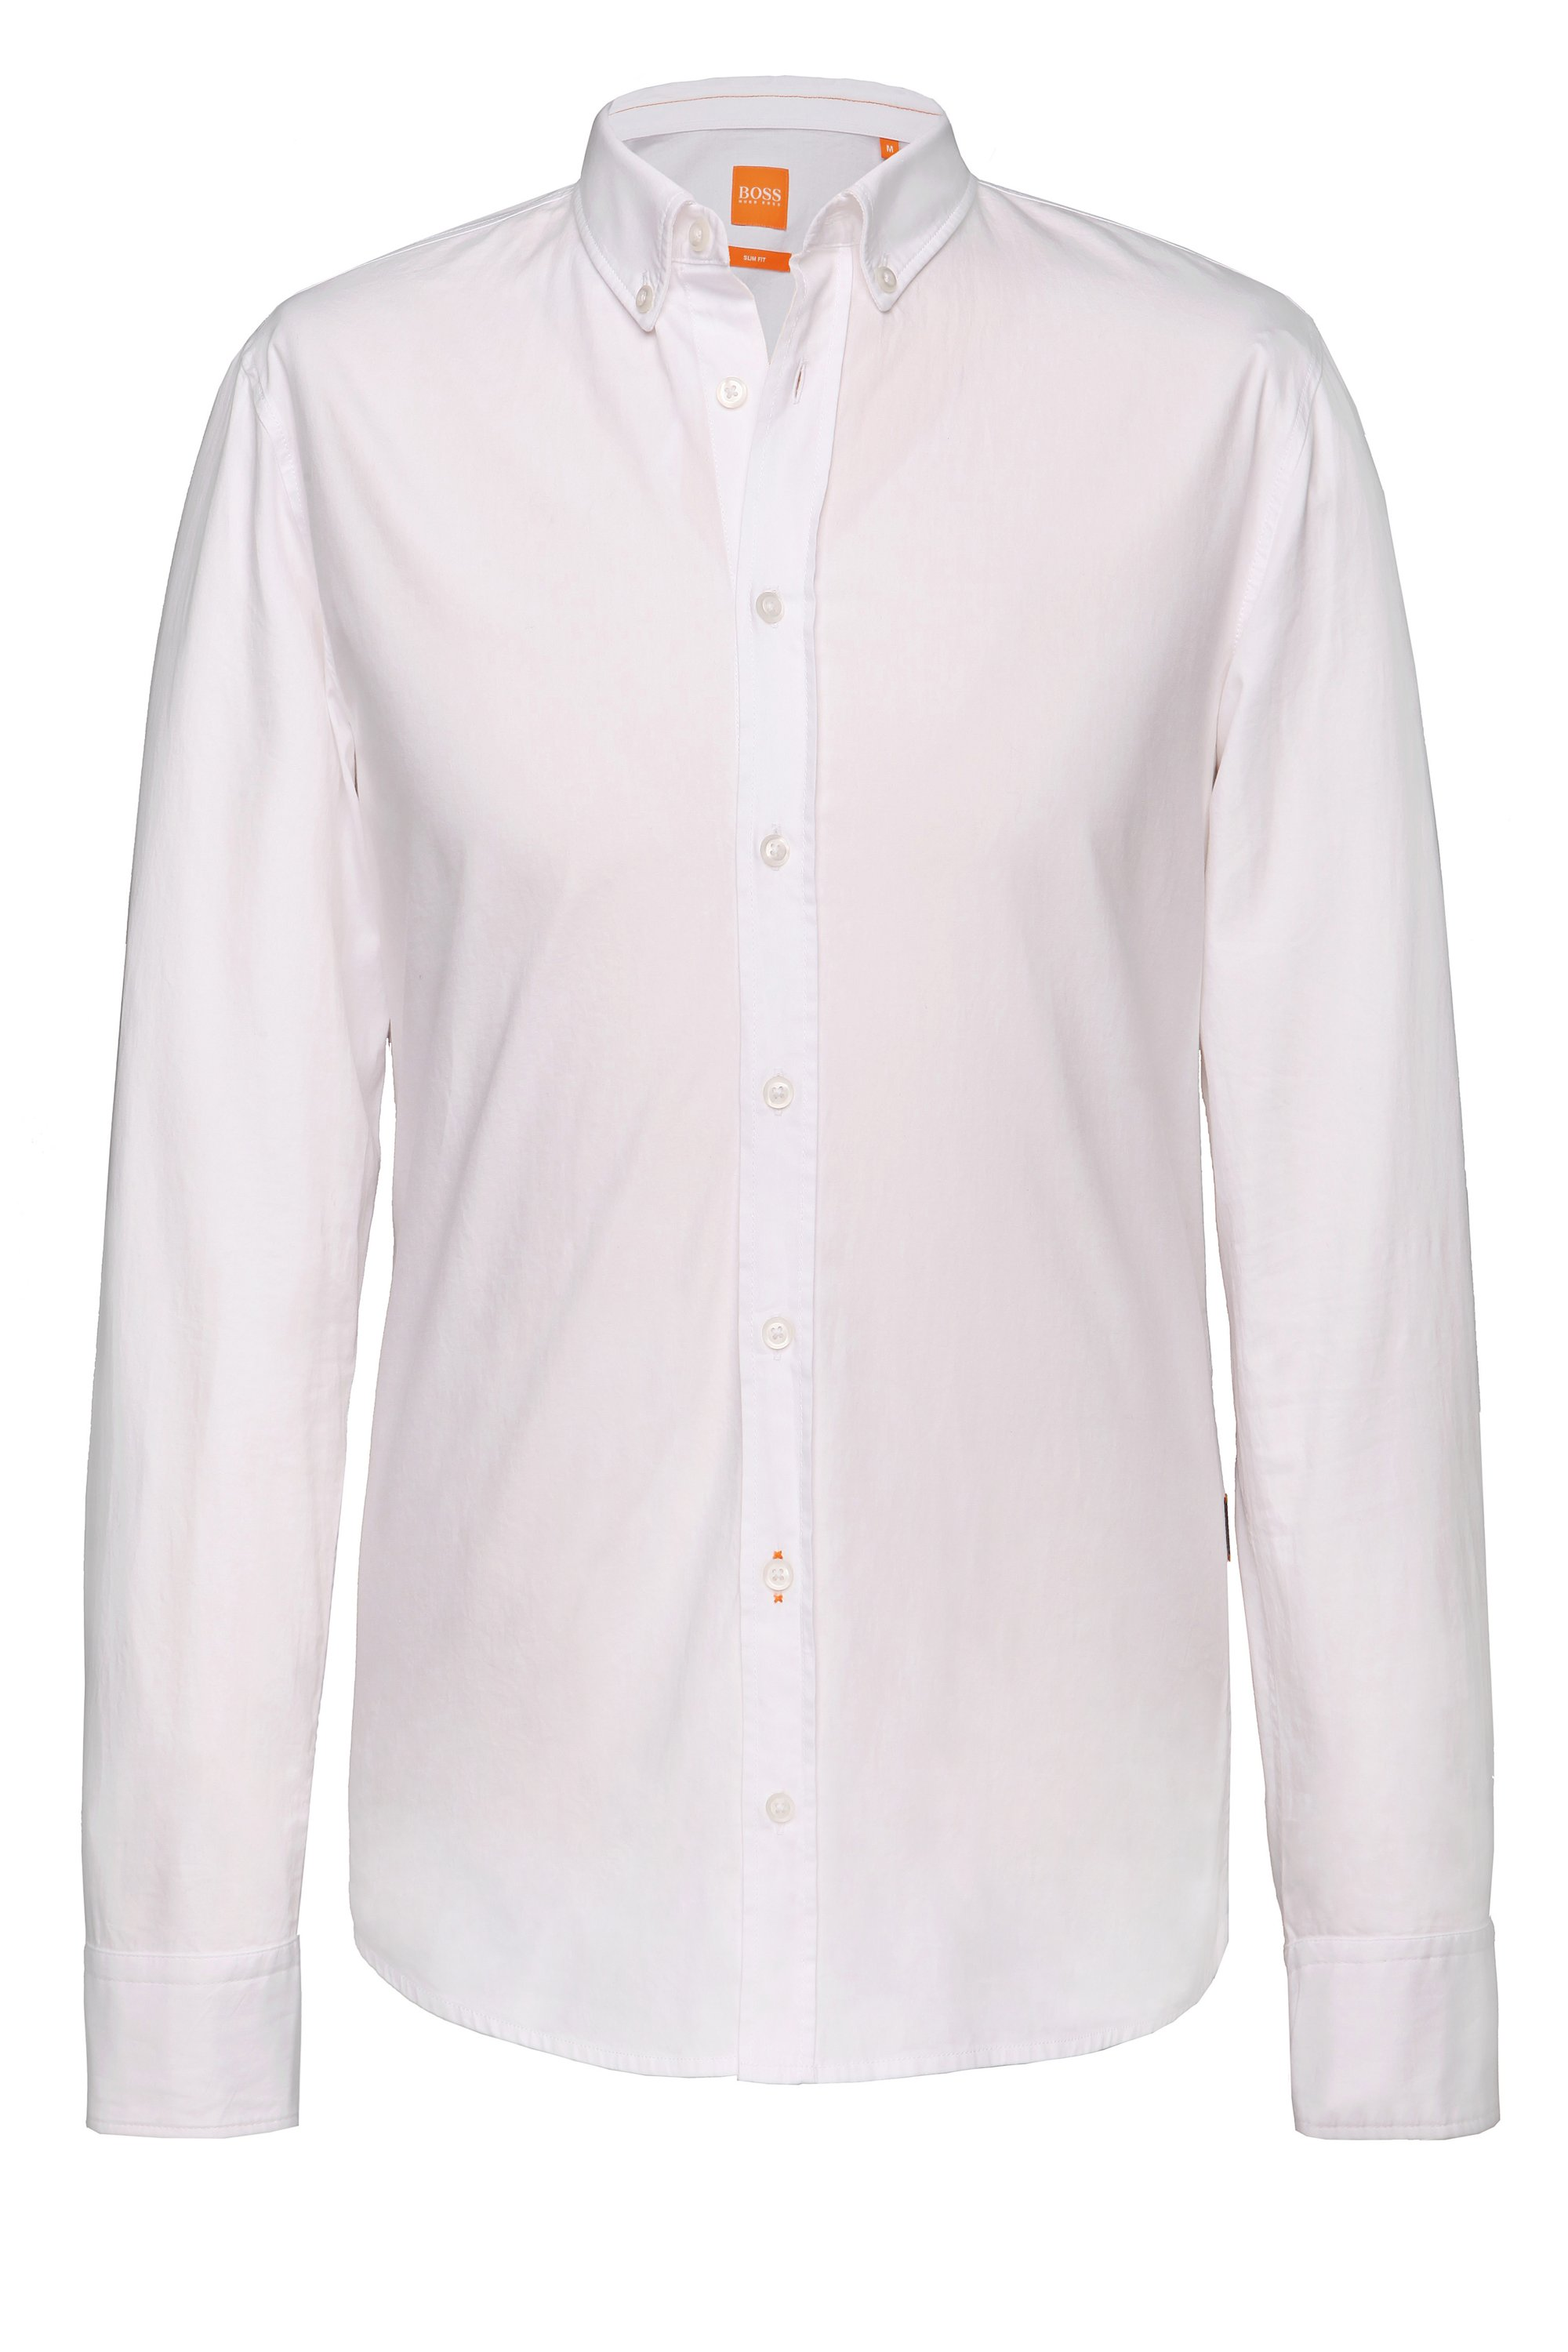 Slim-fit shirt with reverse cuffs and collar by BOSS Orange, White